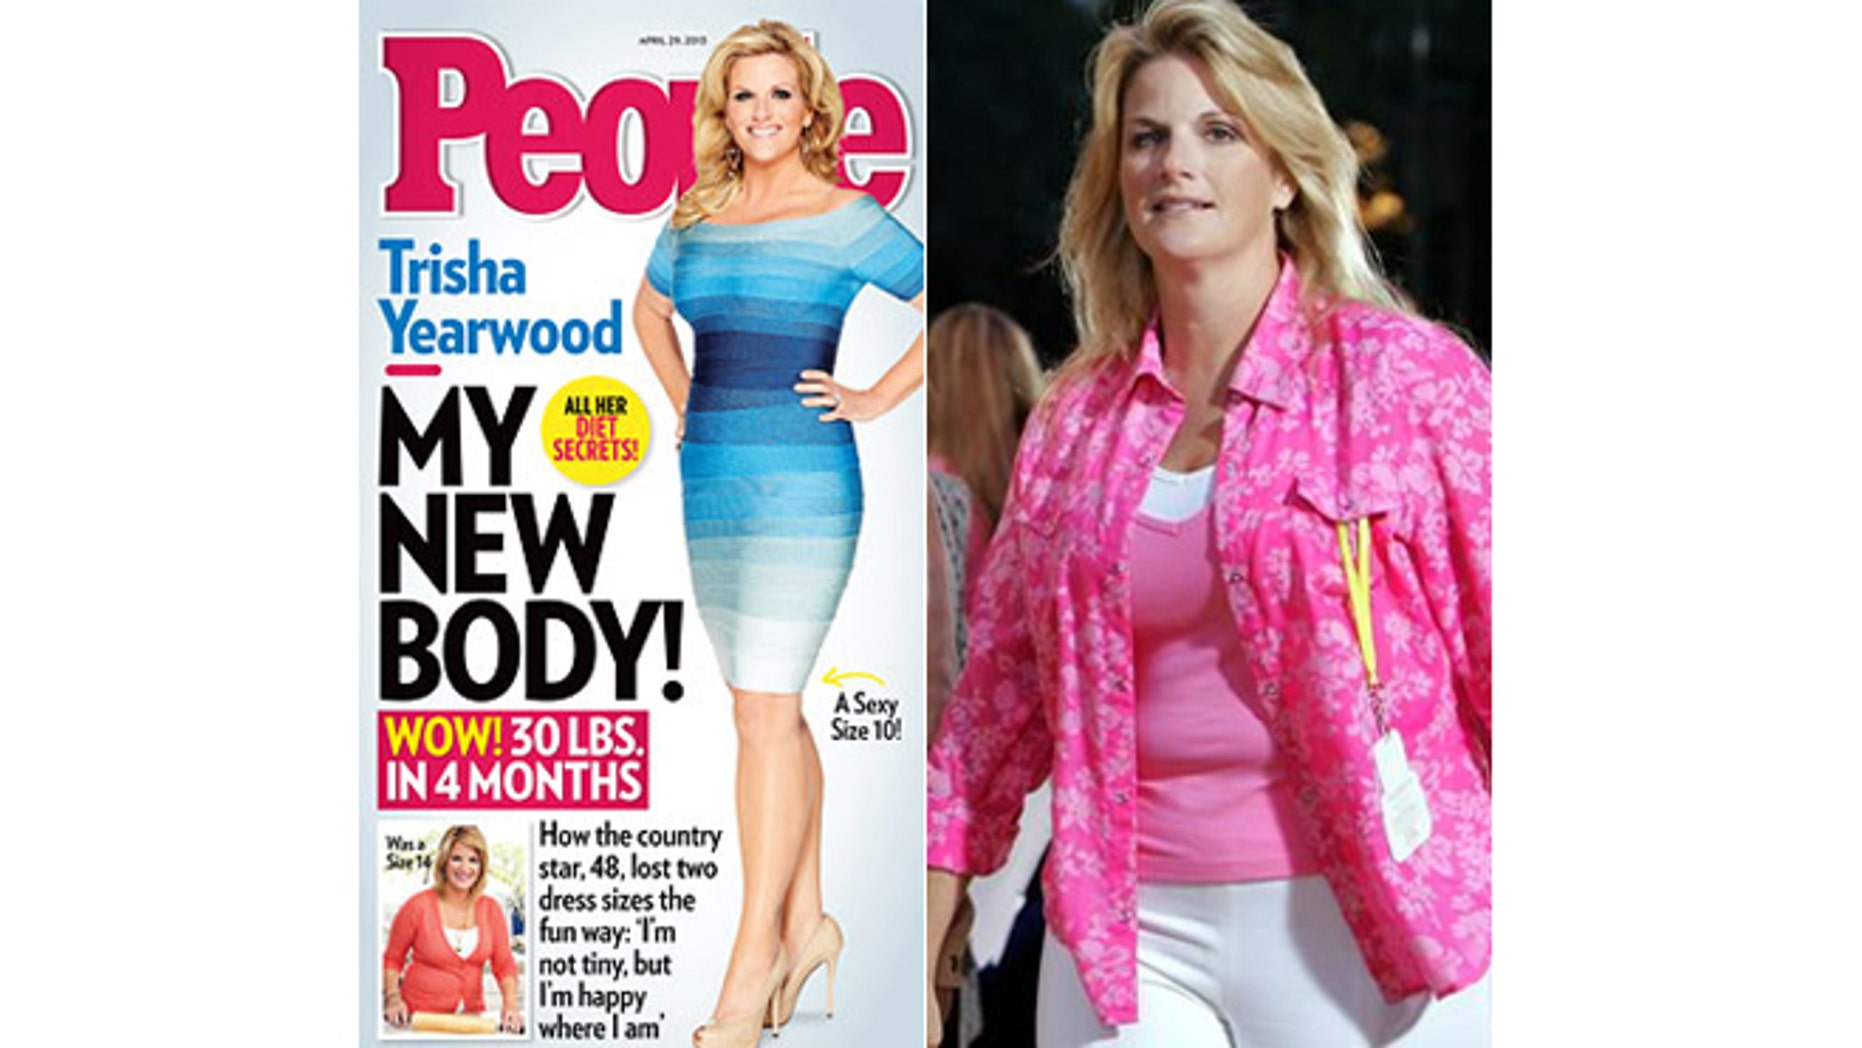 Trisha Yearwood on the cover of People magazine, left, and in 2005, right.